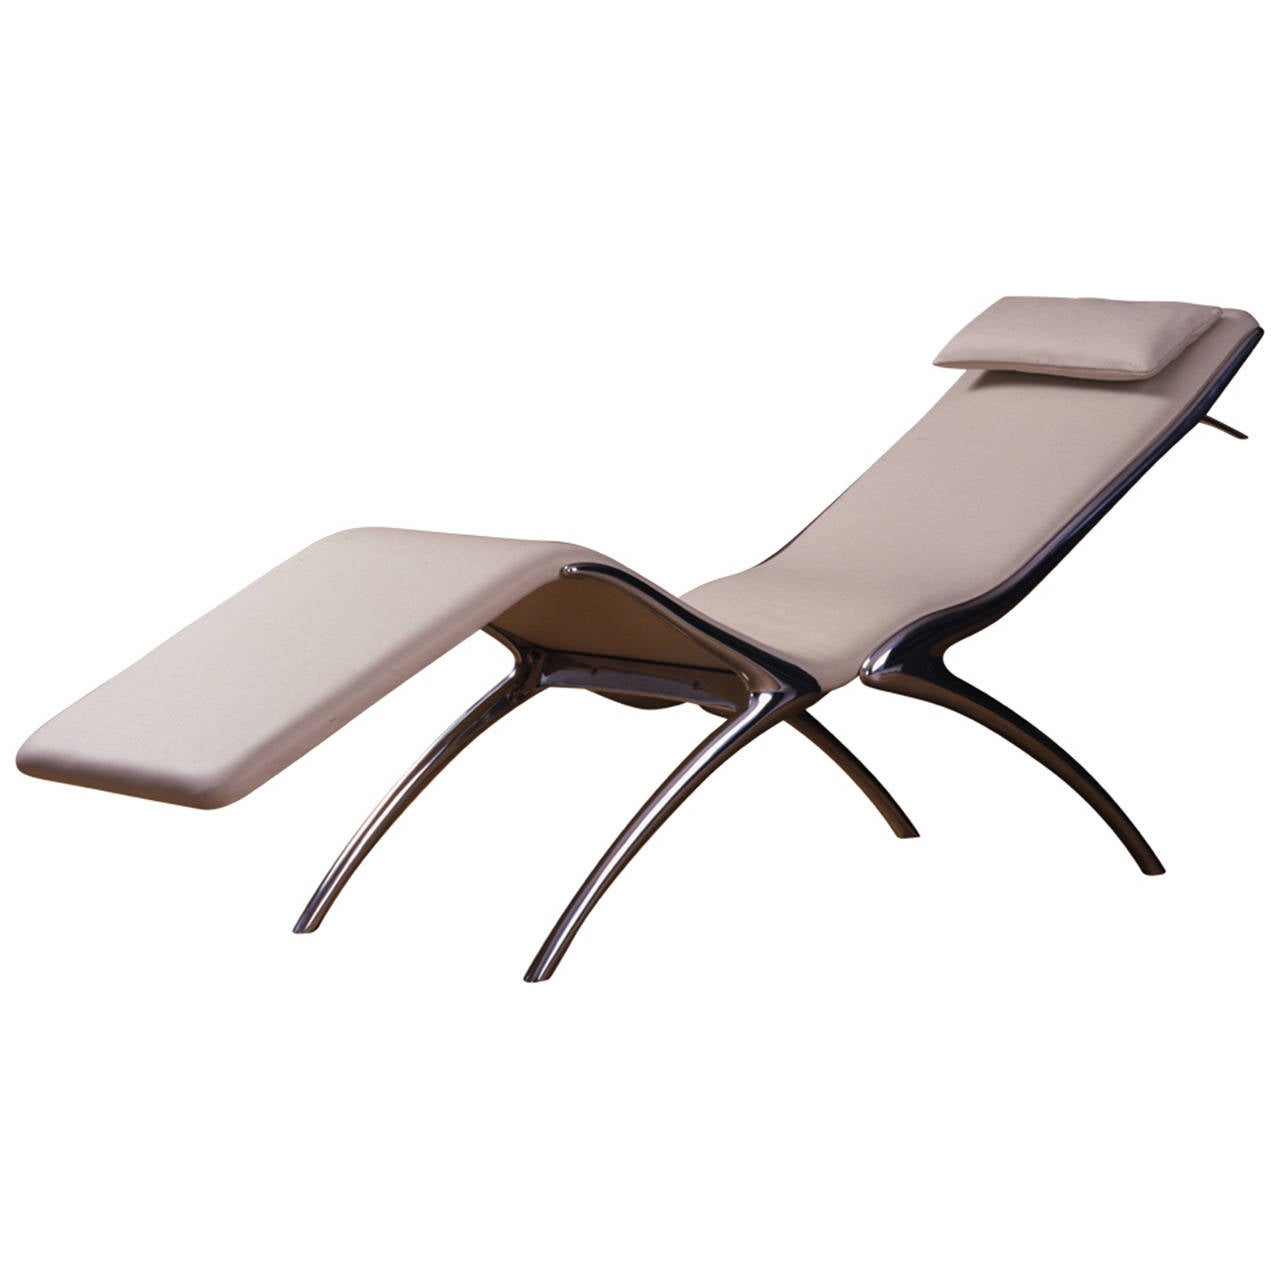 Exclusive chaises longue at 1stdibs for Chaises longues aluminium